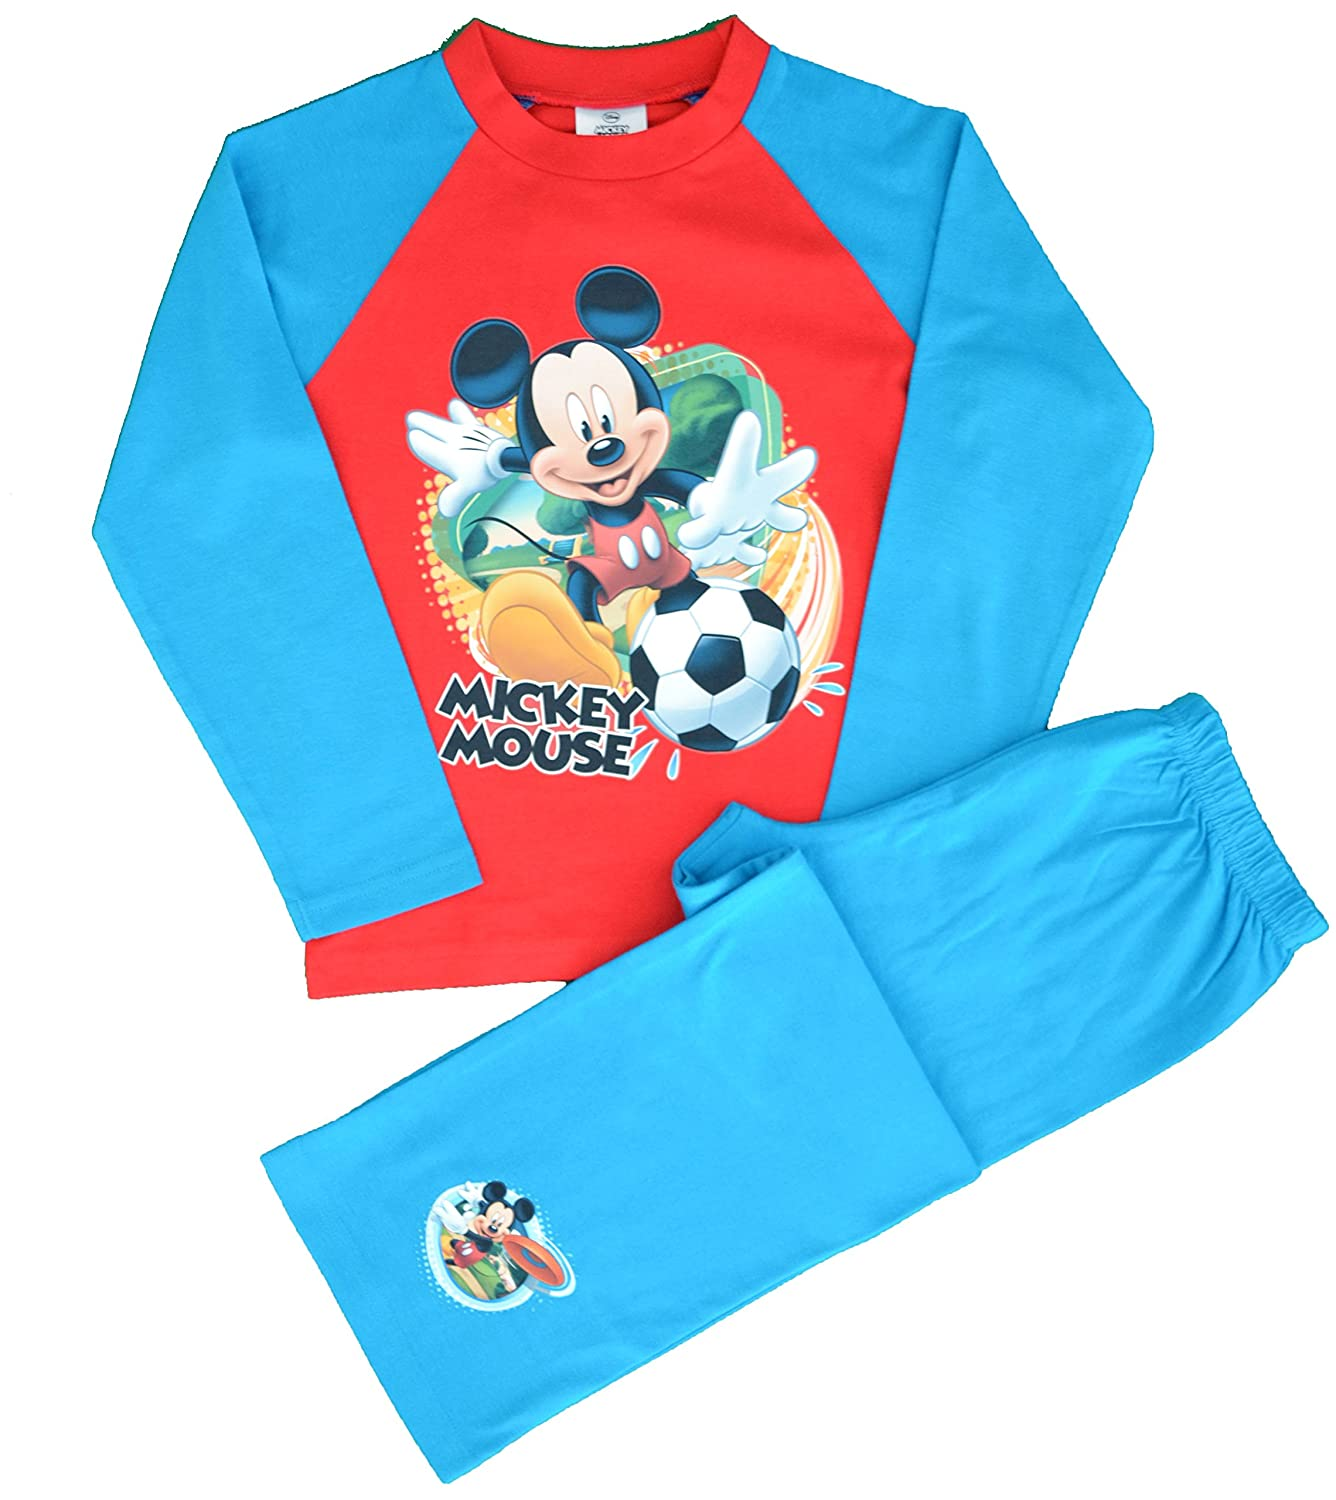 Boys Disney Mickey Mouse Football Long Pyjamas Ages 12 Months to 5 Years